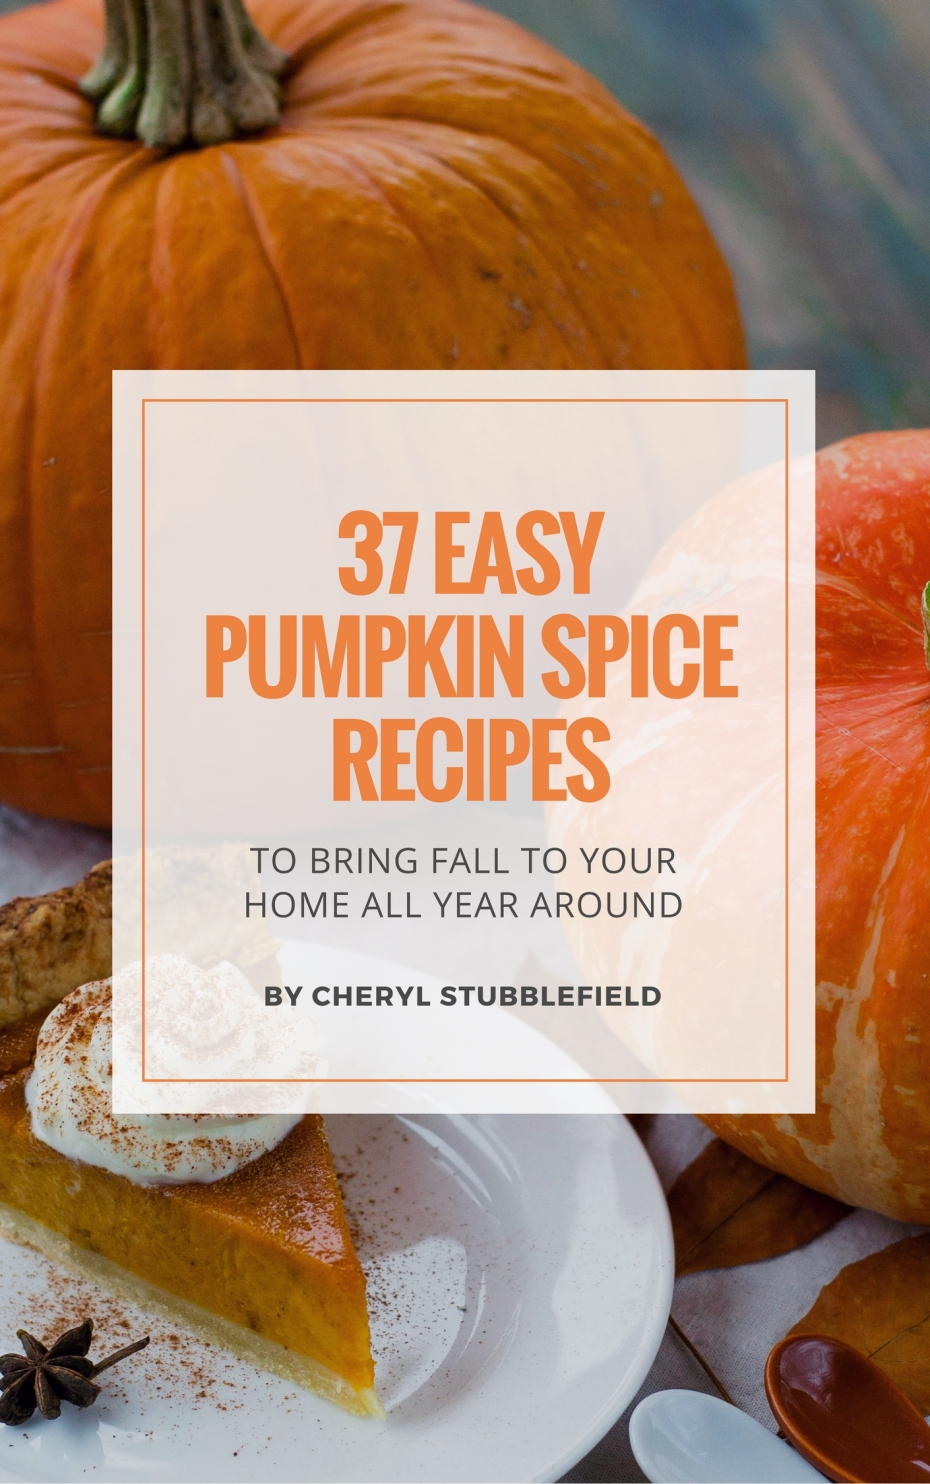 Easy Pumpkin Spice Recipes